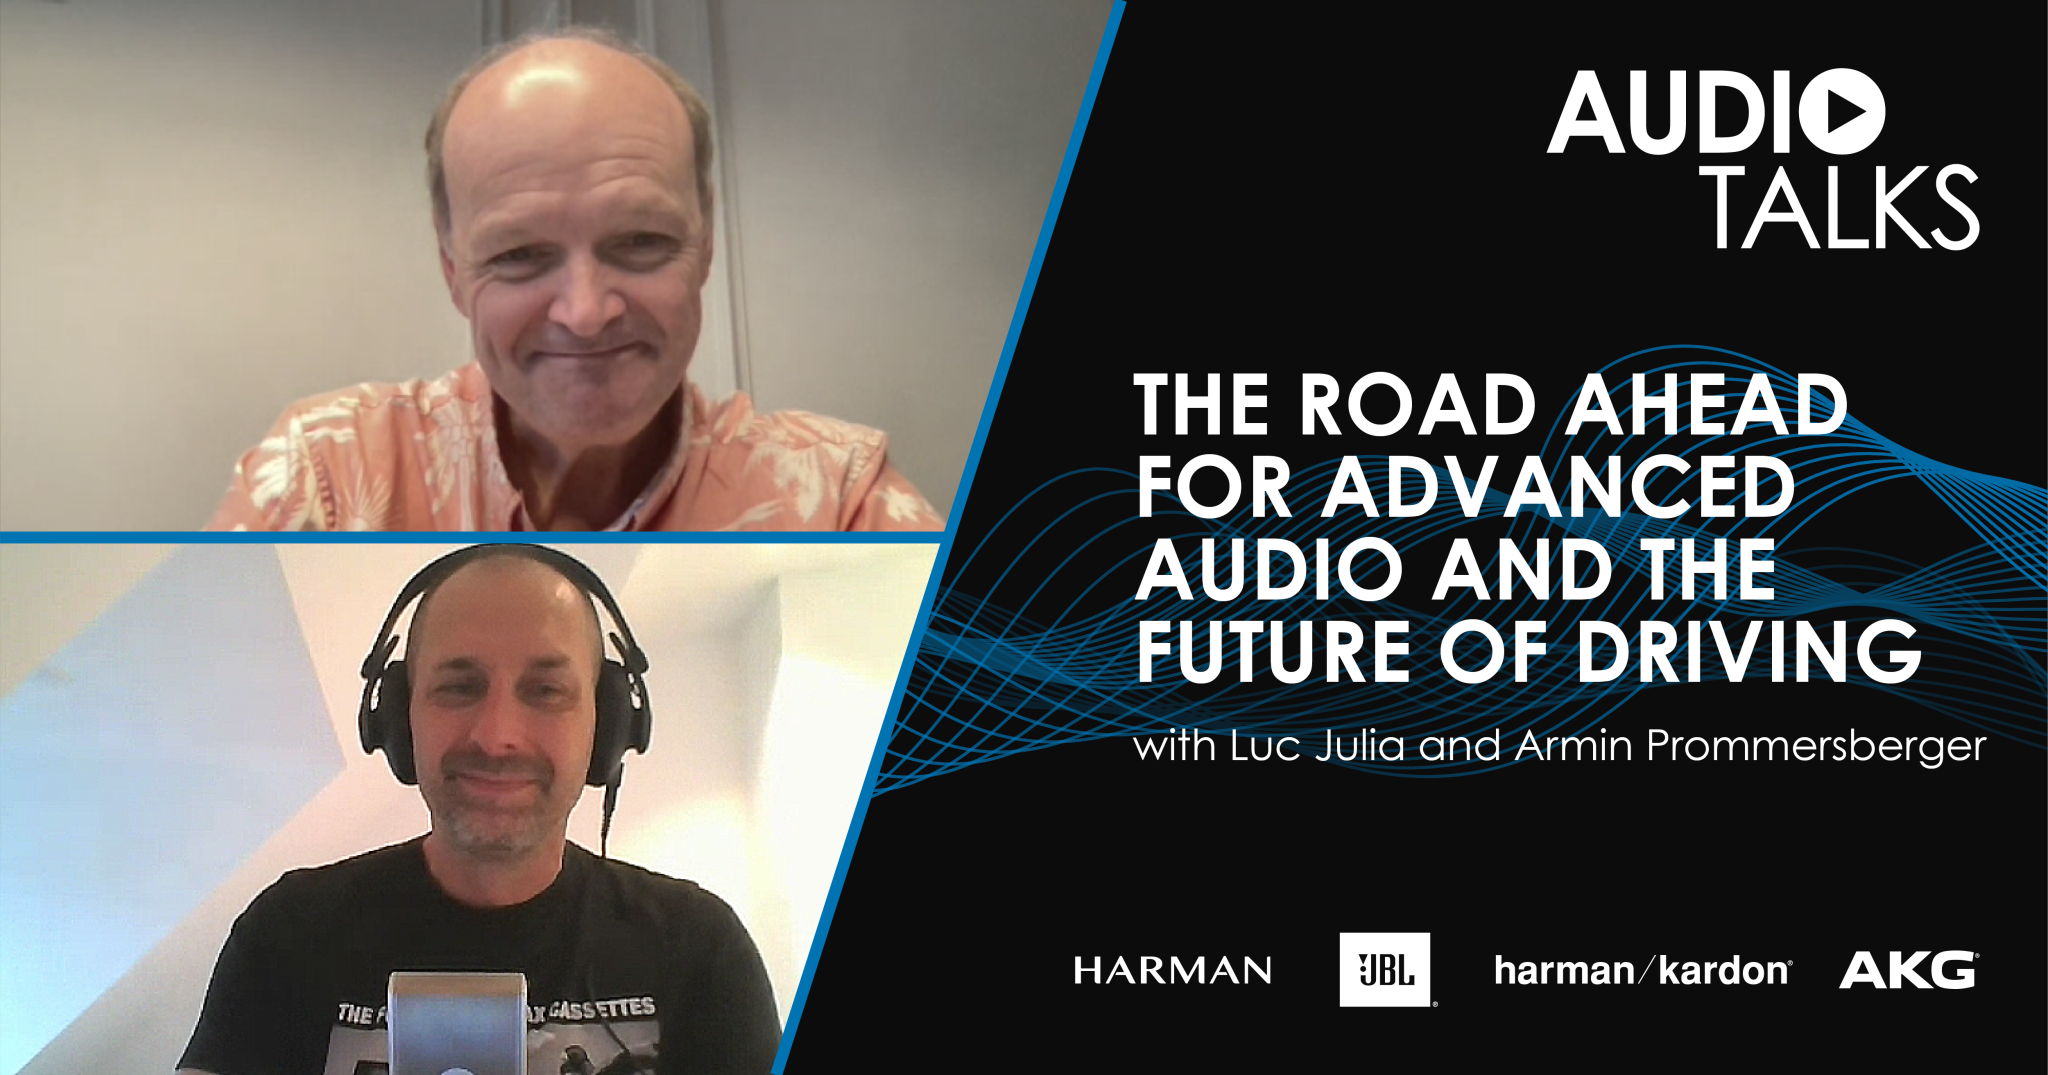 The Road ahead for Advanced Audio and the Future of Driving